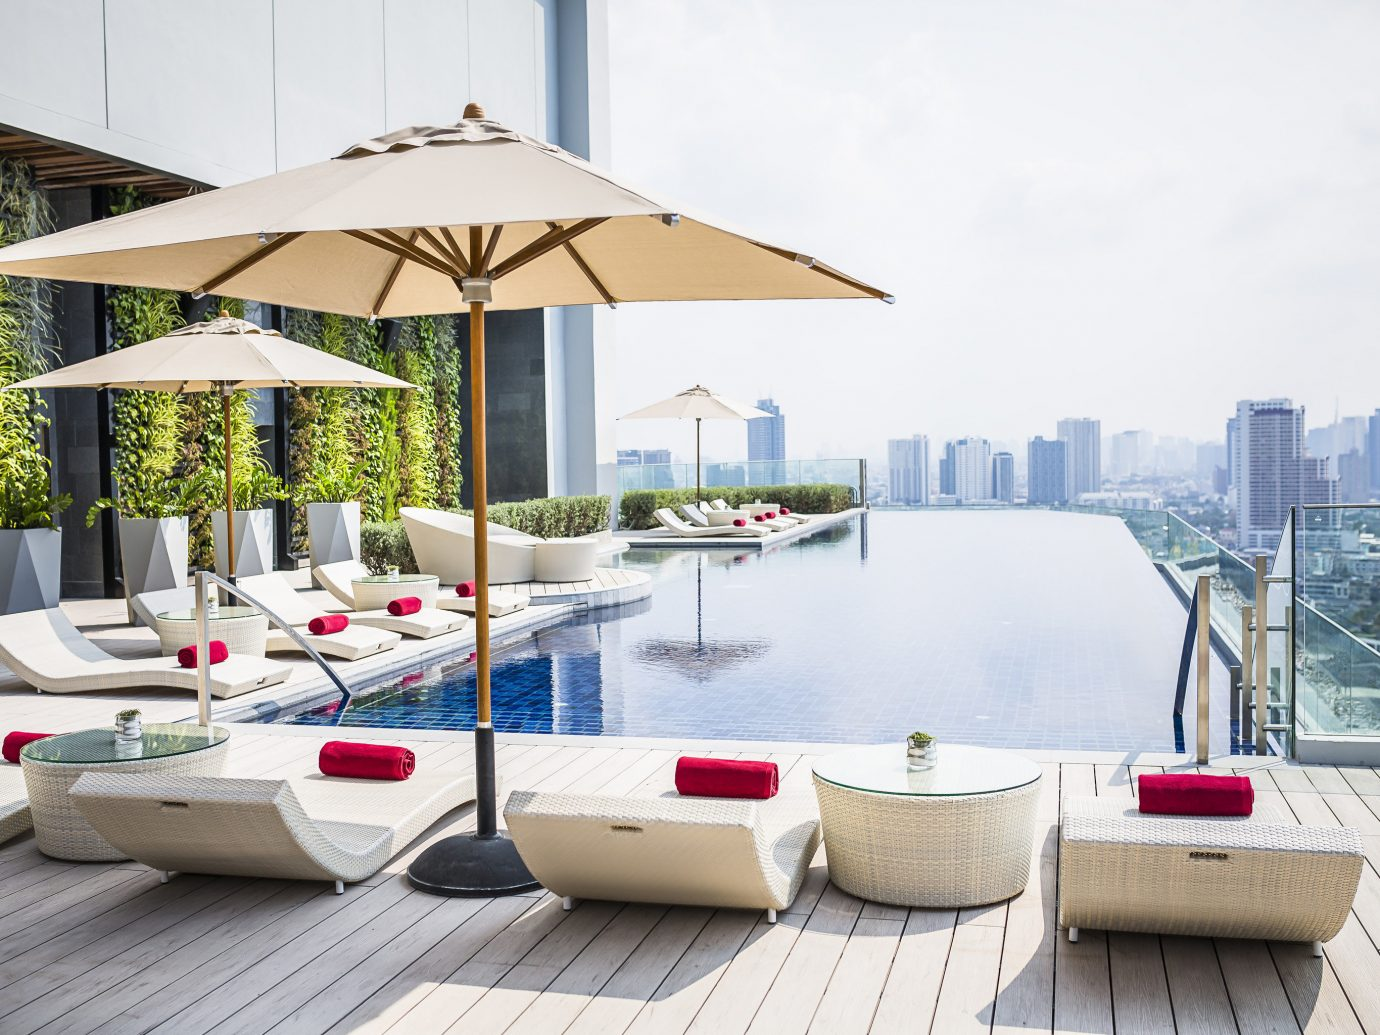 Hotels Jetsetter Guides Trip Ideas sky outdoor swimming pool outdoor structure Design umbrella table interior design backyard Villa